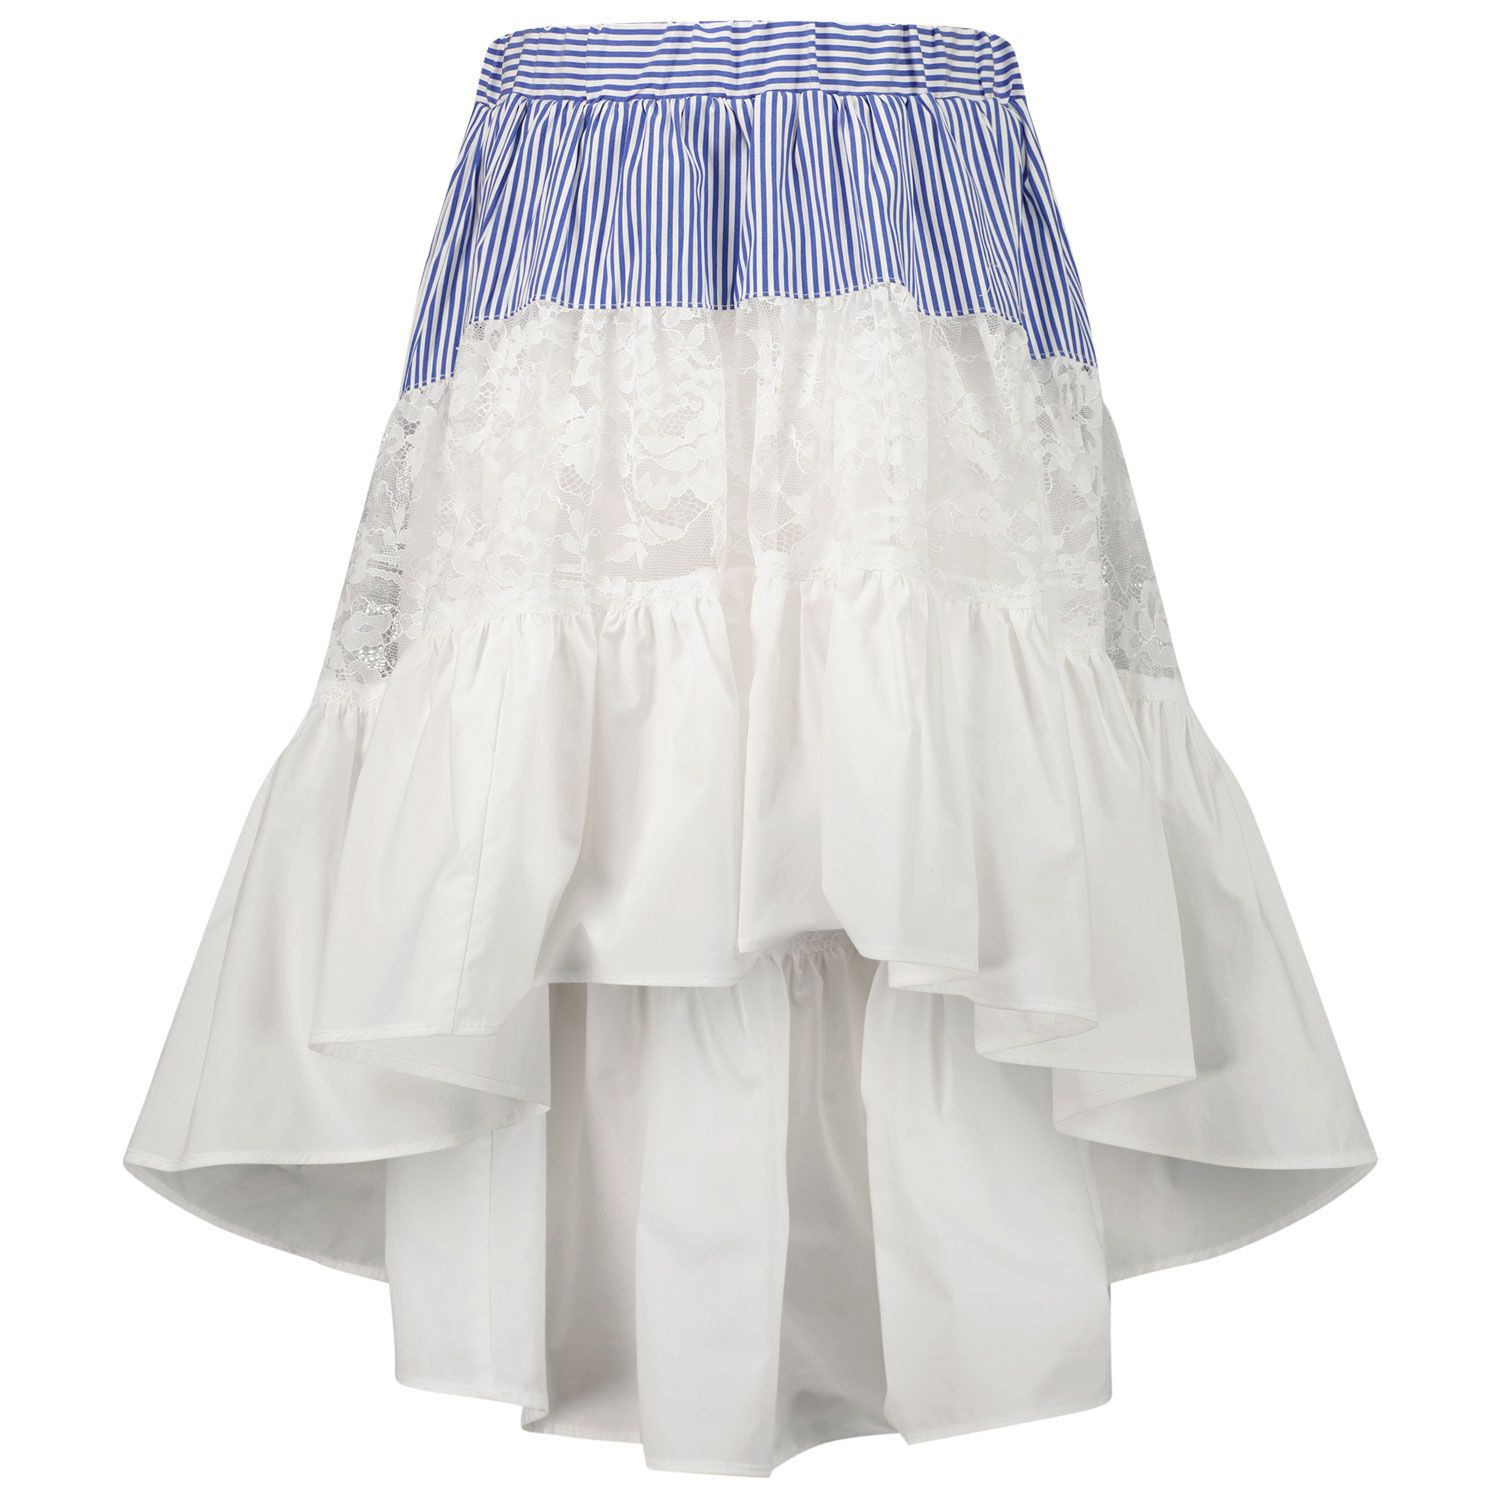 Picture of MonnaLisa 117704 kids skirt blue